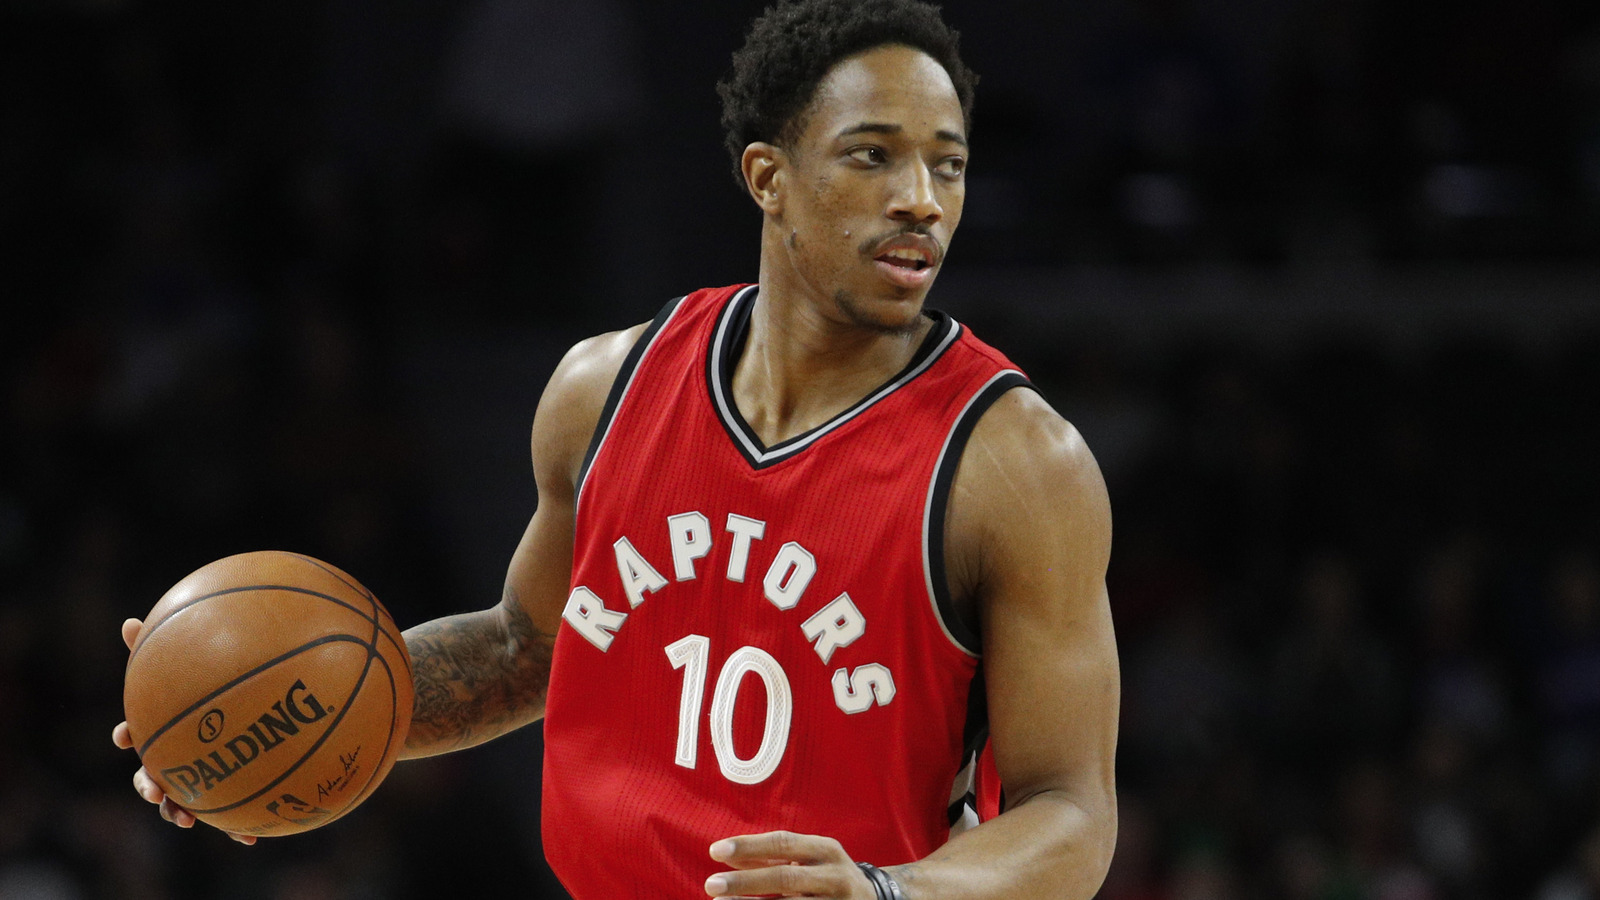 demar derozan athlete wallpaper 63862